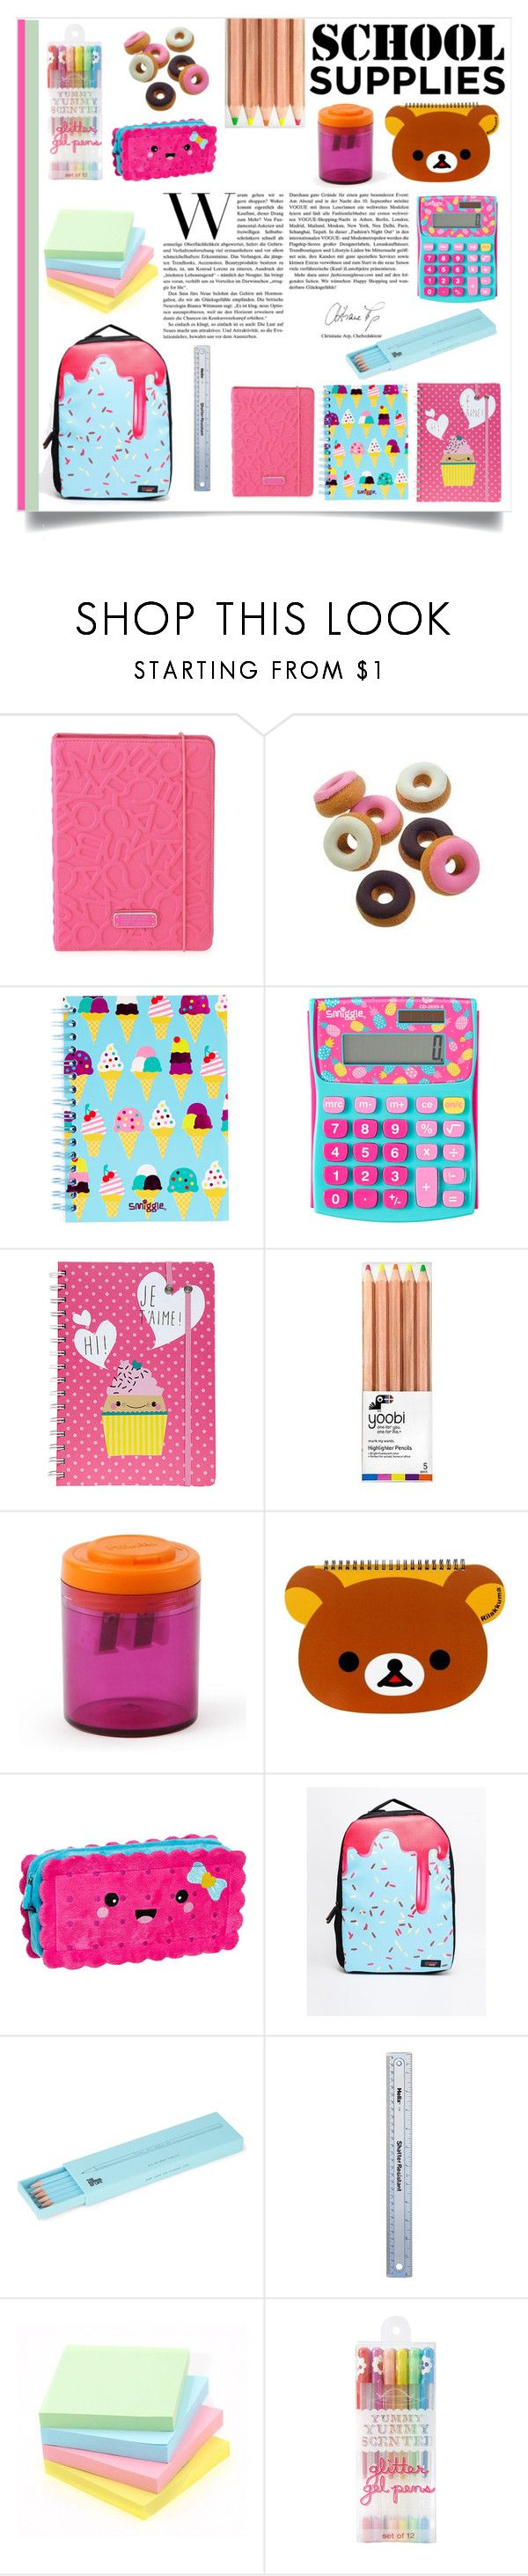 """School supplies"" by sarah-09013112 ❤ liked on Polyvore featuring interior, interiors, interior design, home, home decor, interior decorating, Marc by Marc Jacobs, Yoobi, Urban Junk and Polite"